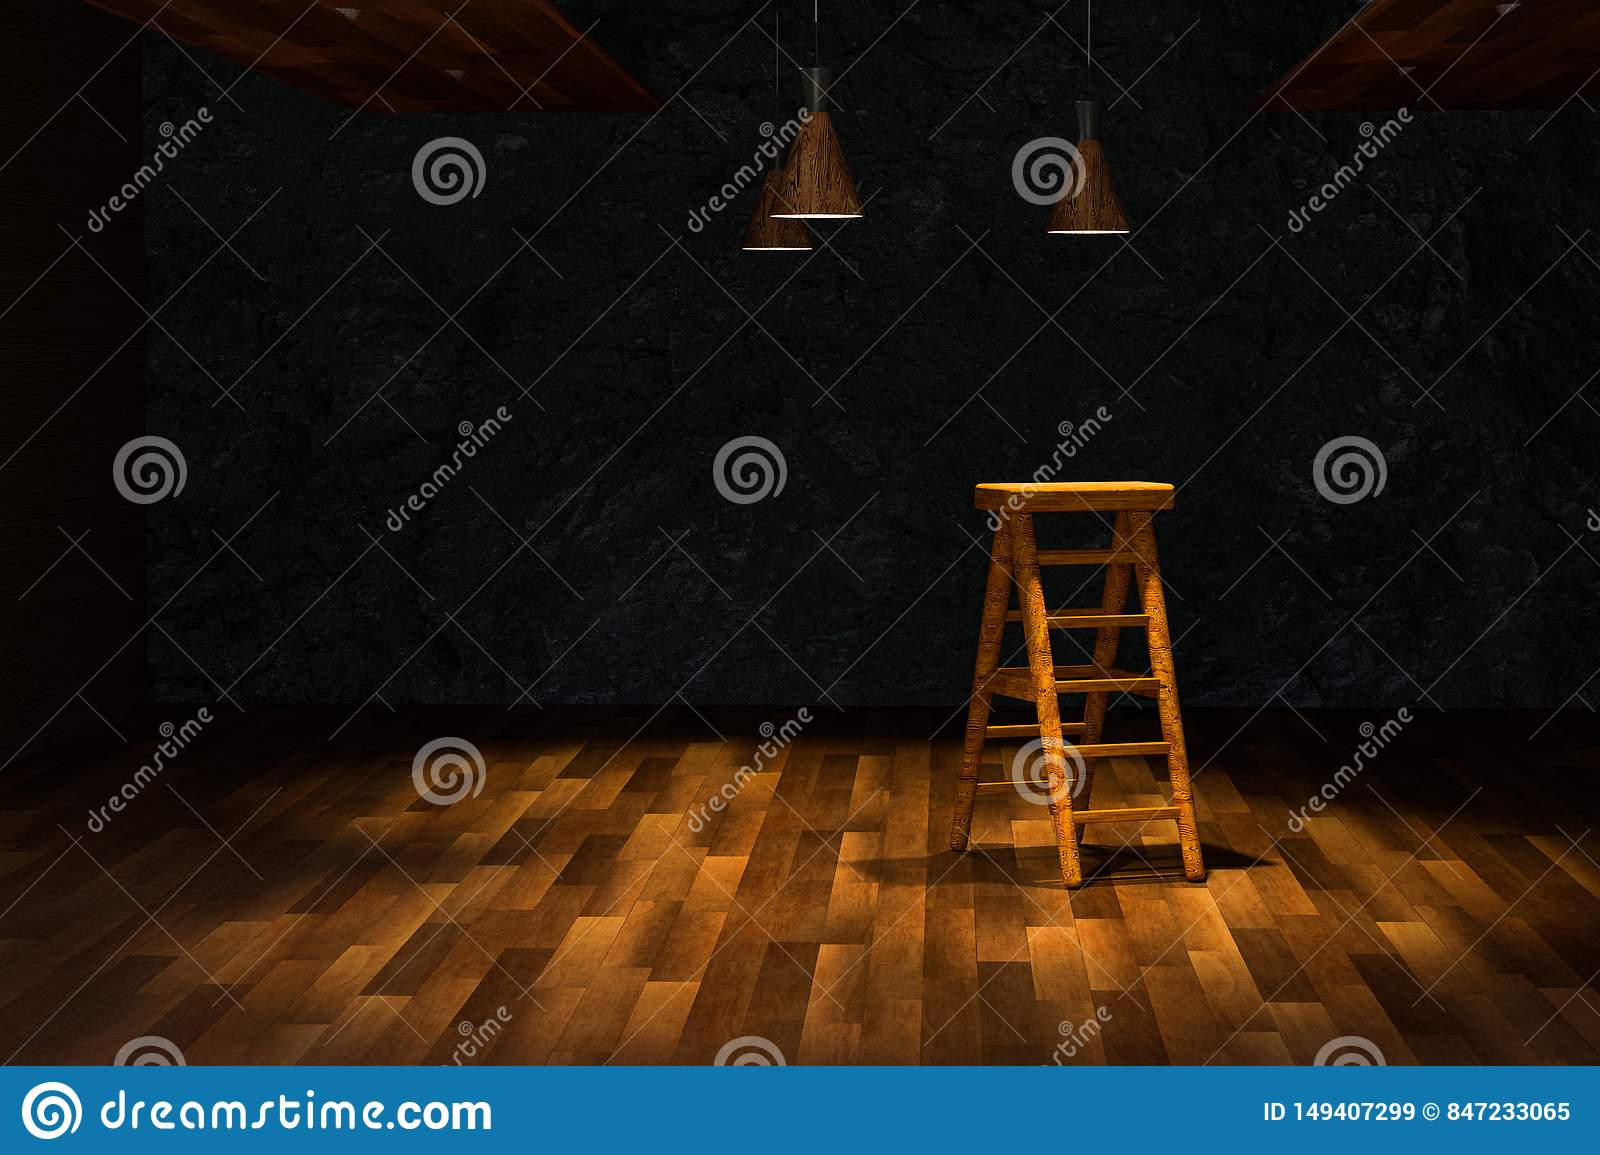 Wooden Cellar With Ladder And Ceiling Lamp Inside, Vintage